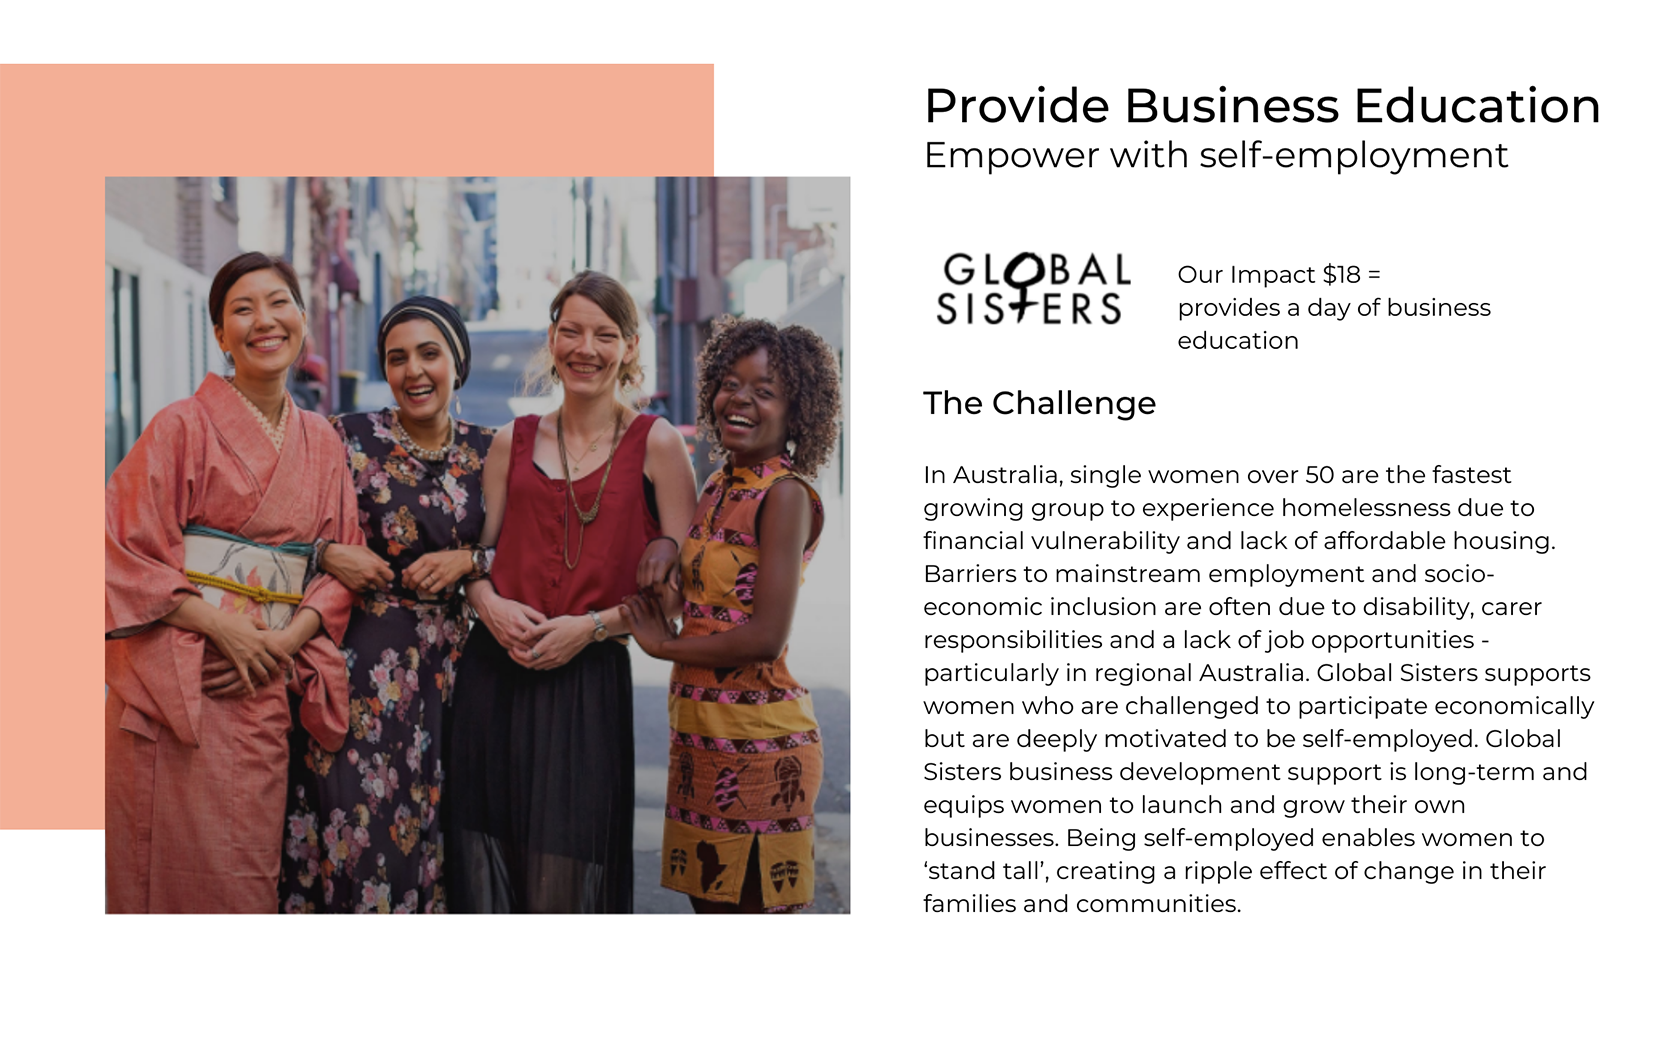 Aôra Voyage support Global Sisters to help disadvantaged women start their own business